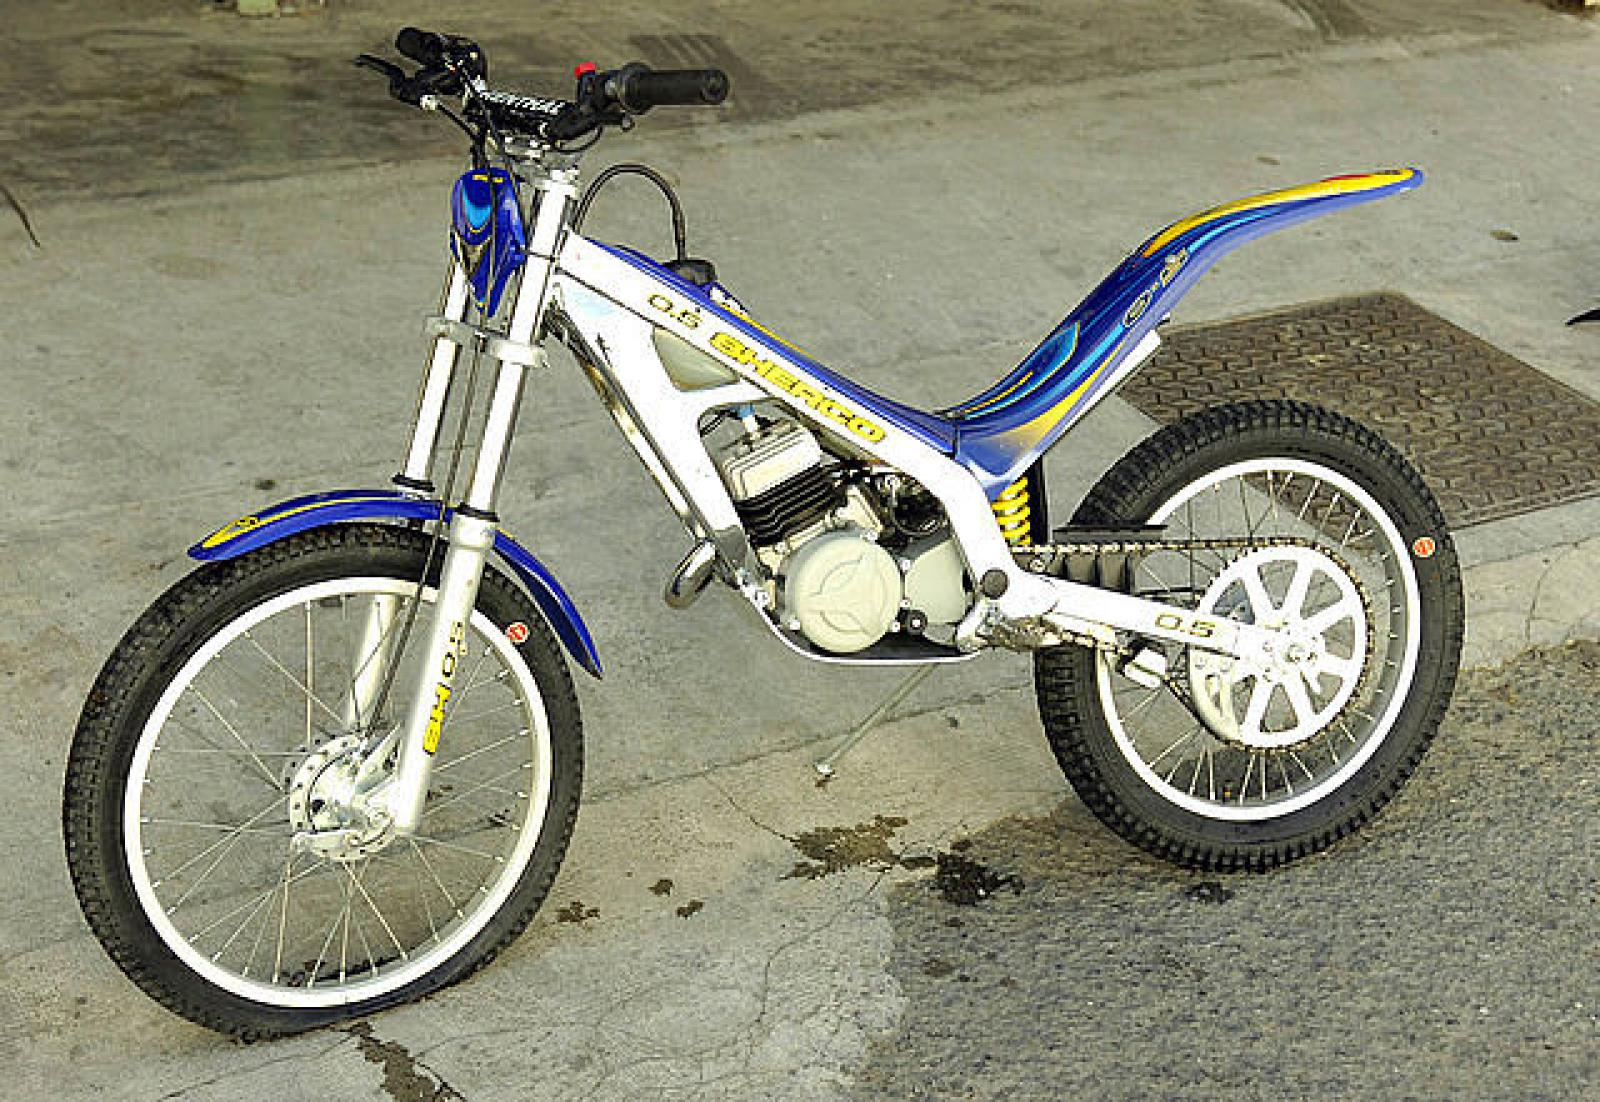 Sherco 0.5 2002 images #124502